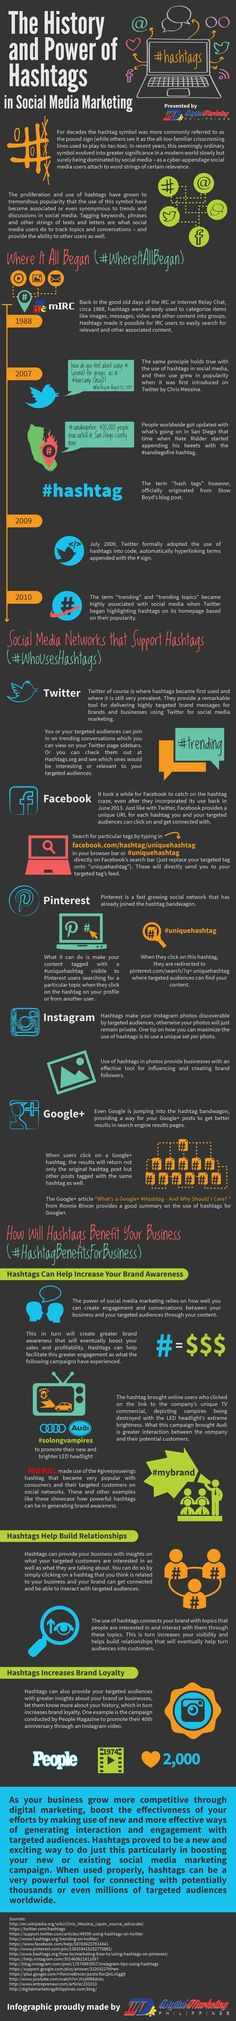 The History & Power of Hashtags - Webmag.co | Digital Resources for Net Professionals #socialmedia #infographic